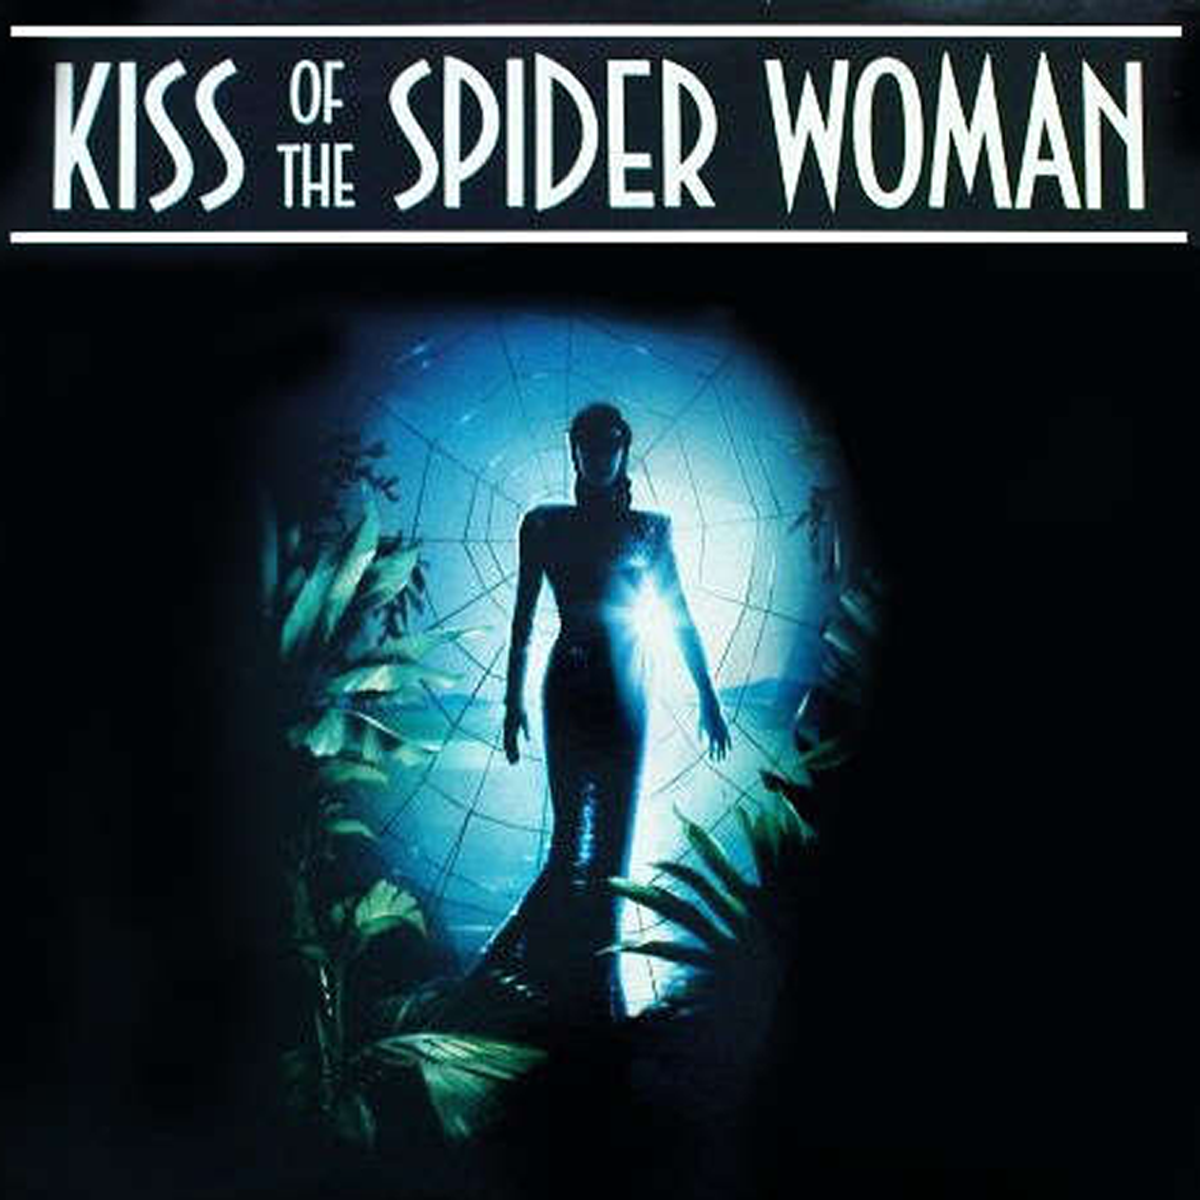 kiss of the spider woman ISTYA movie review